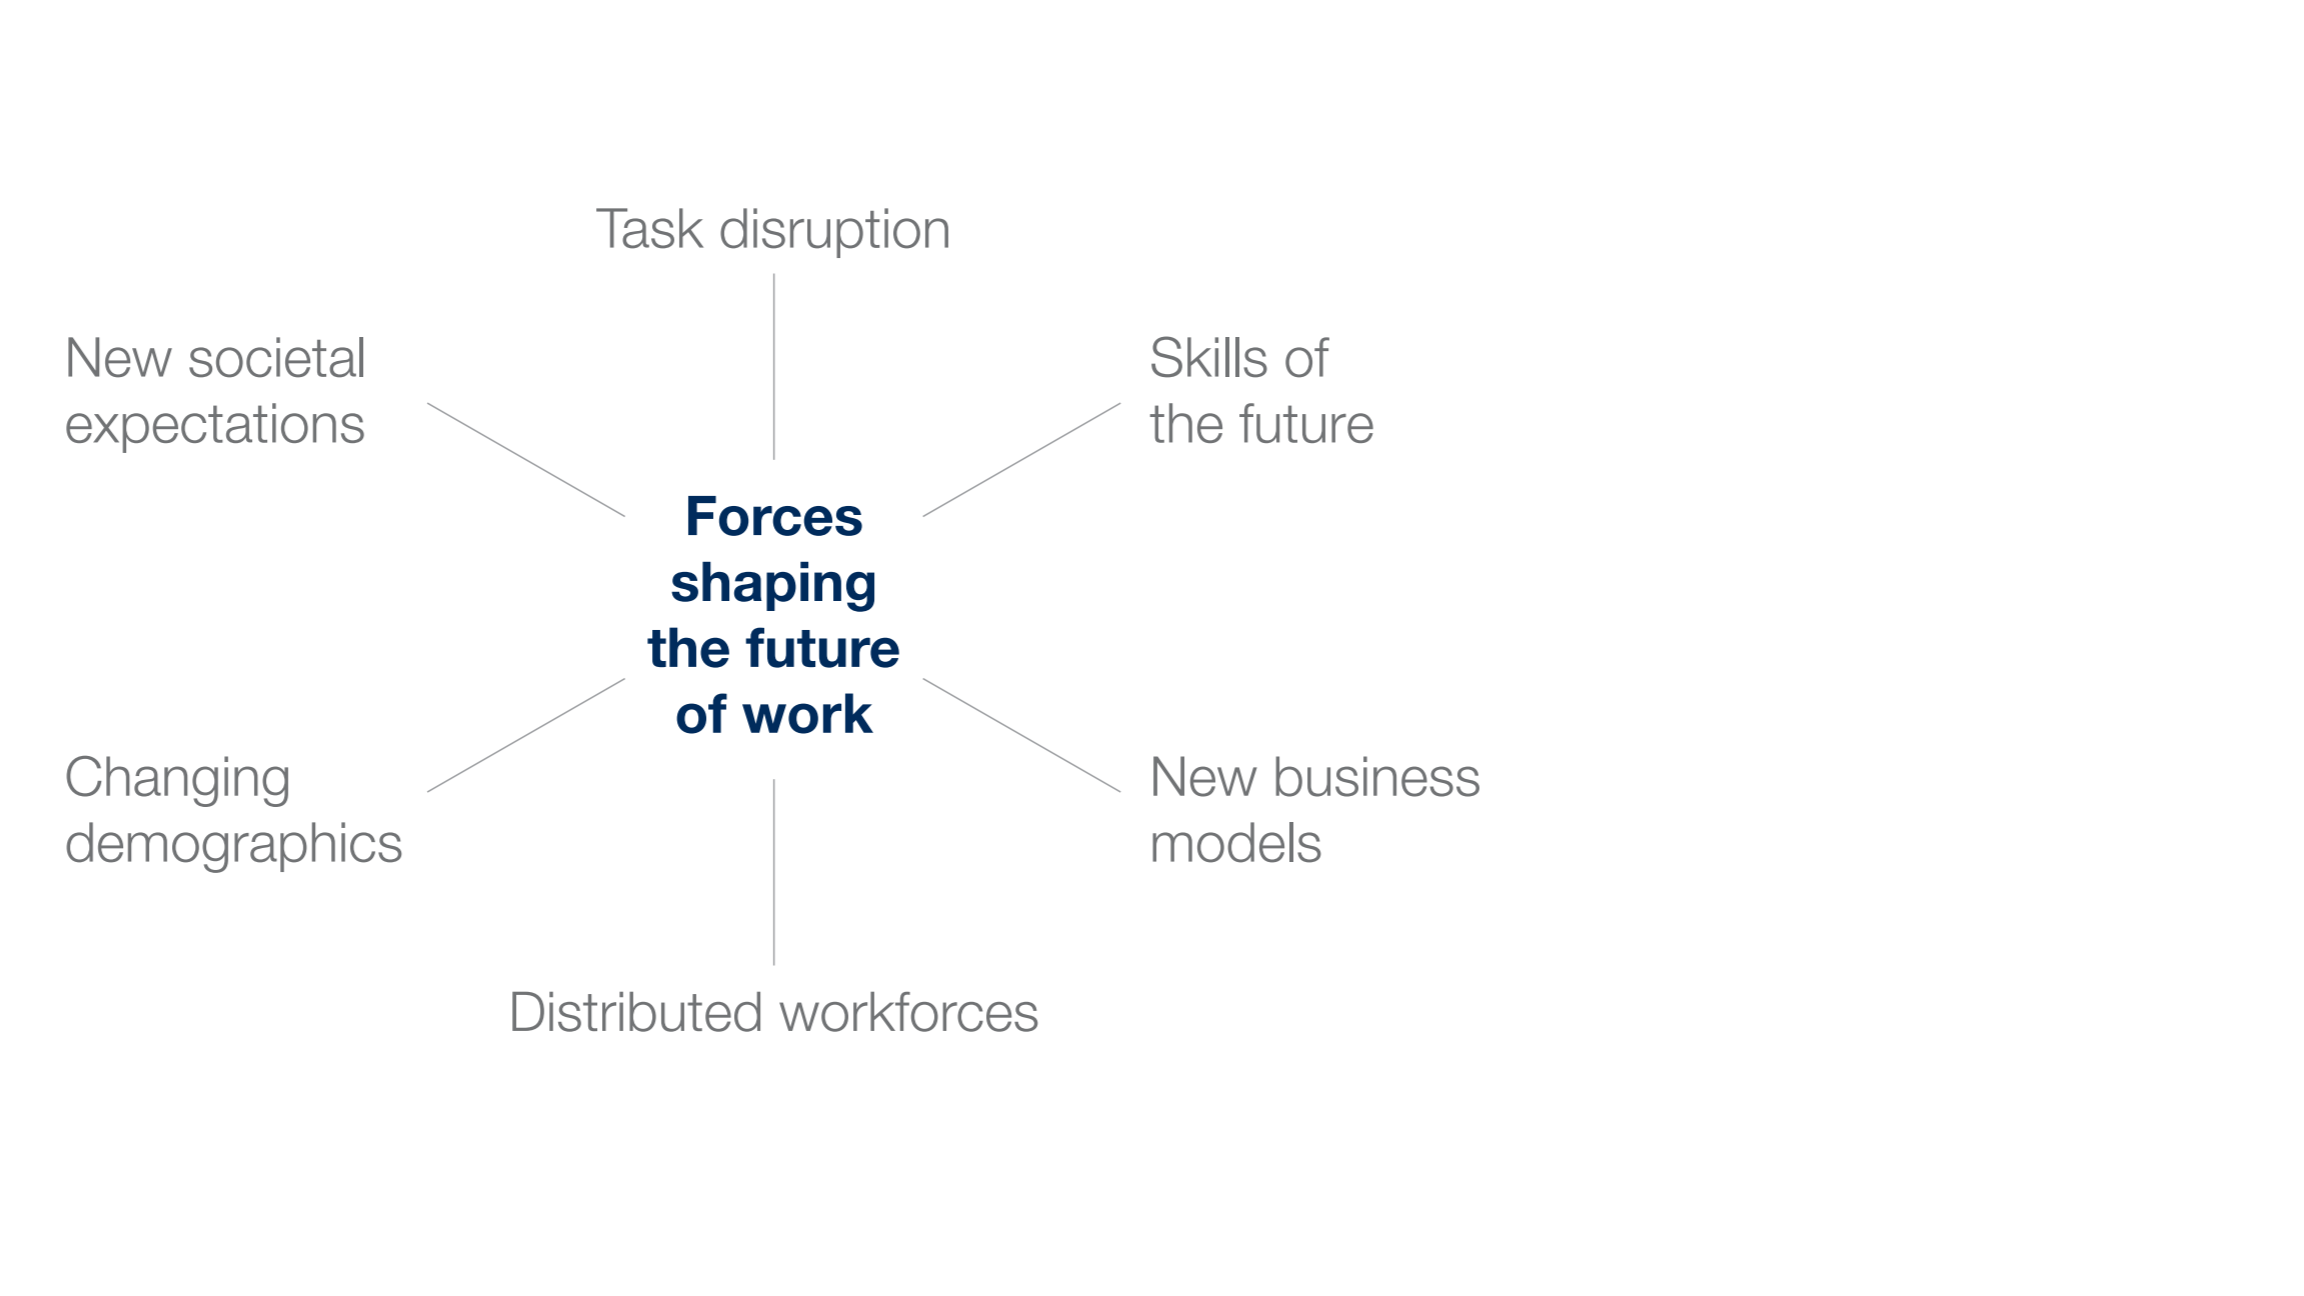 Human resources and future of work